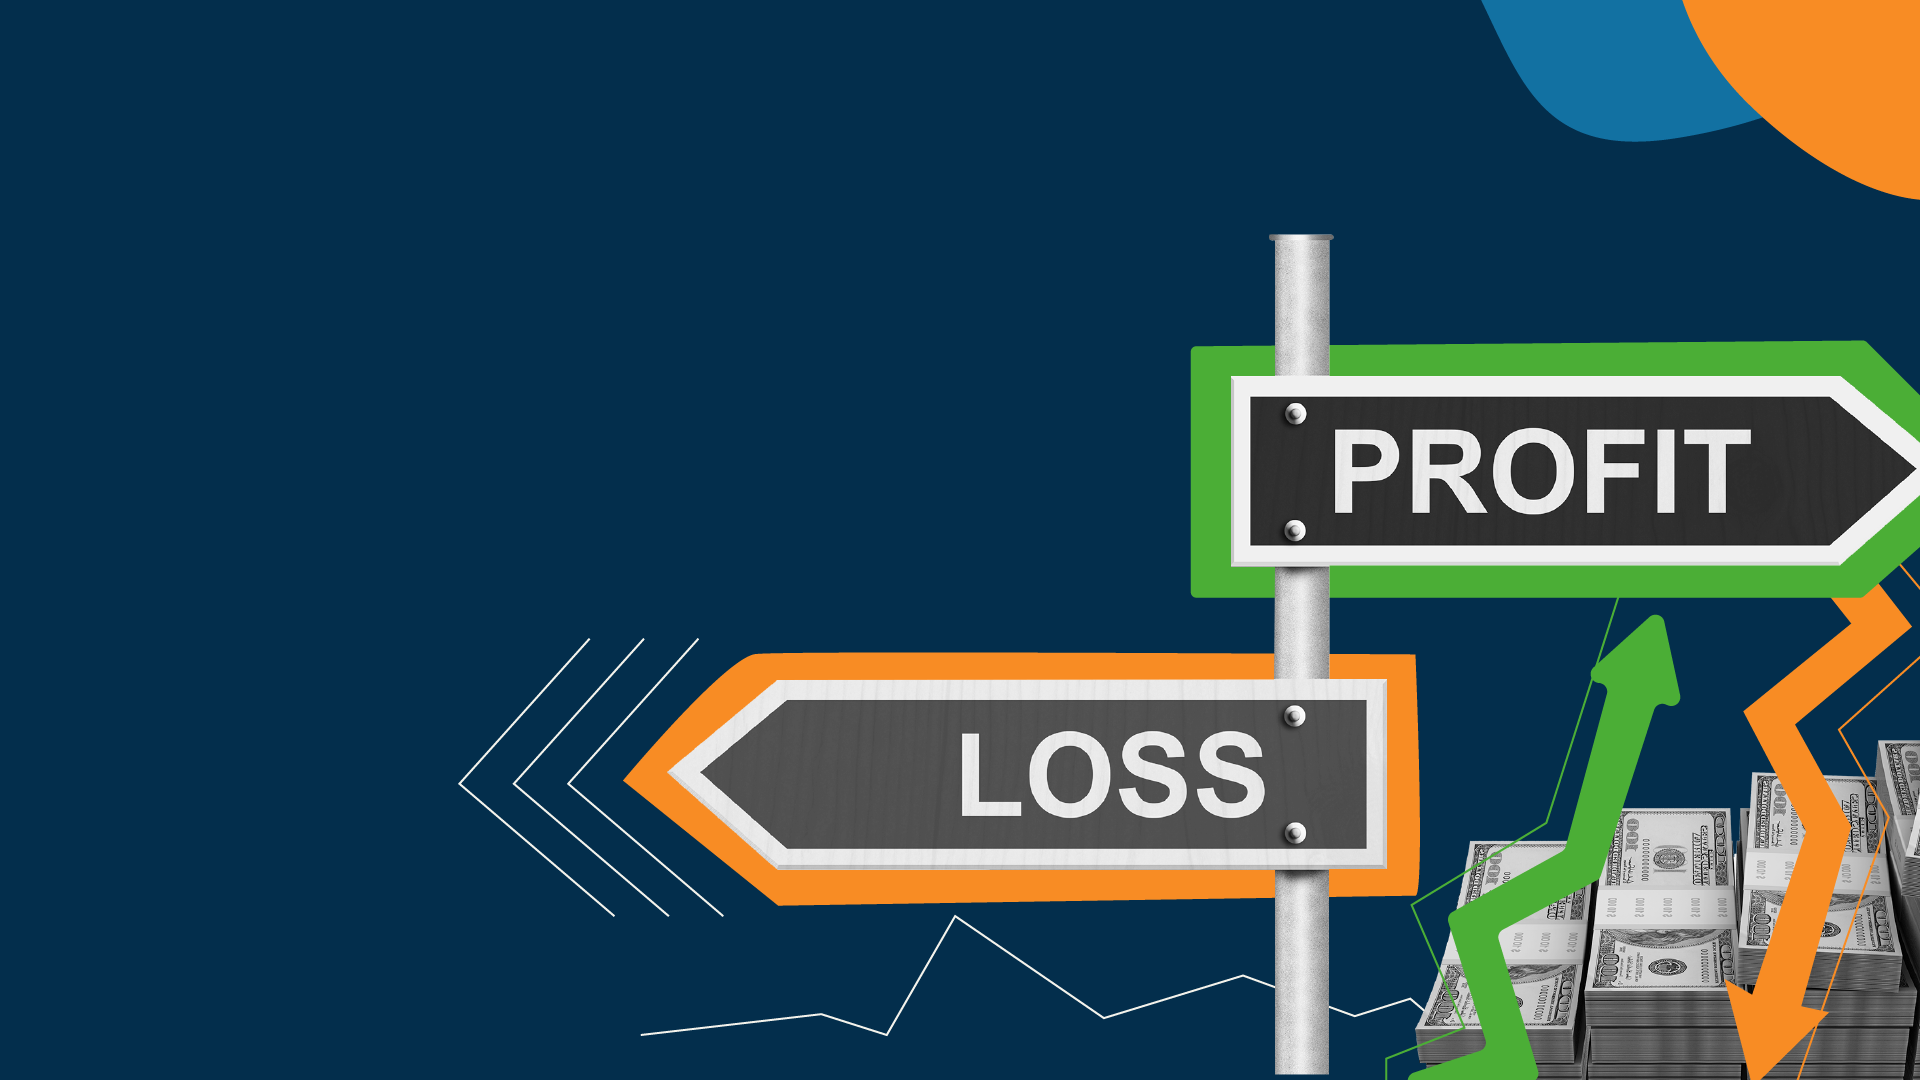 Financials: Zooming in on the 'Profit & Loss' (P&L) or Income Statement